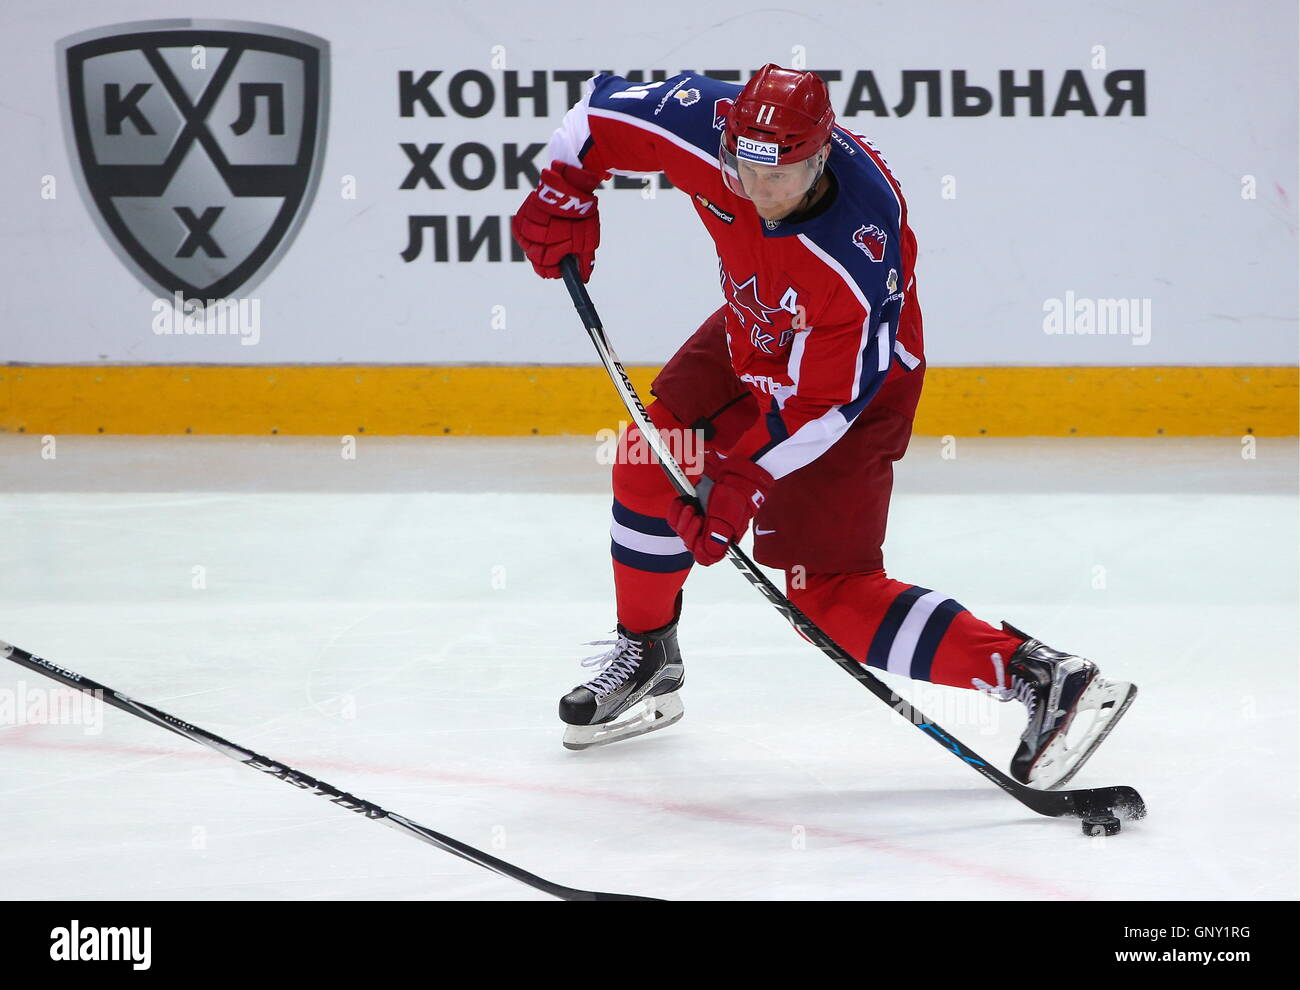 Moscow, Russia. 1st Sep, 2016. CSKA Moscow's Sergei Andronov in action in the 2016/2017 KHL Regular Season ice - Stock Image